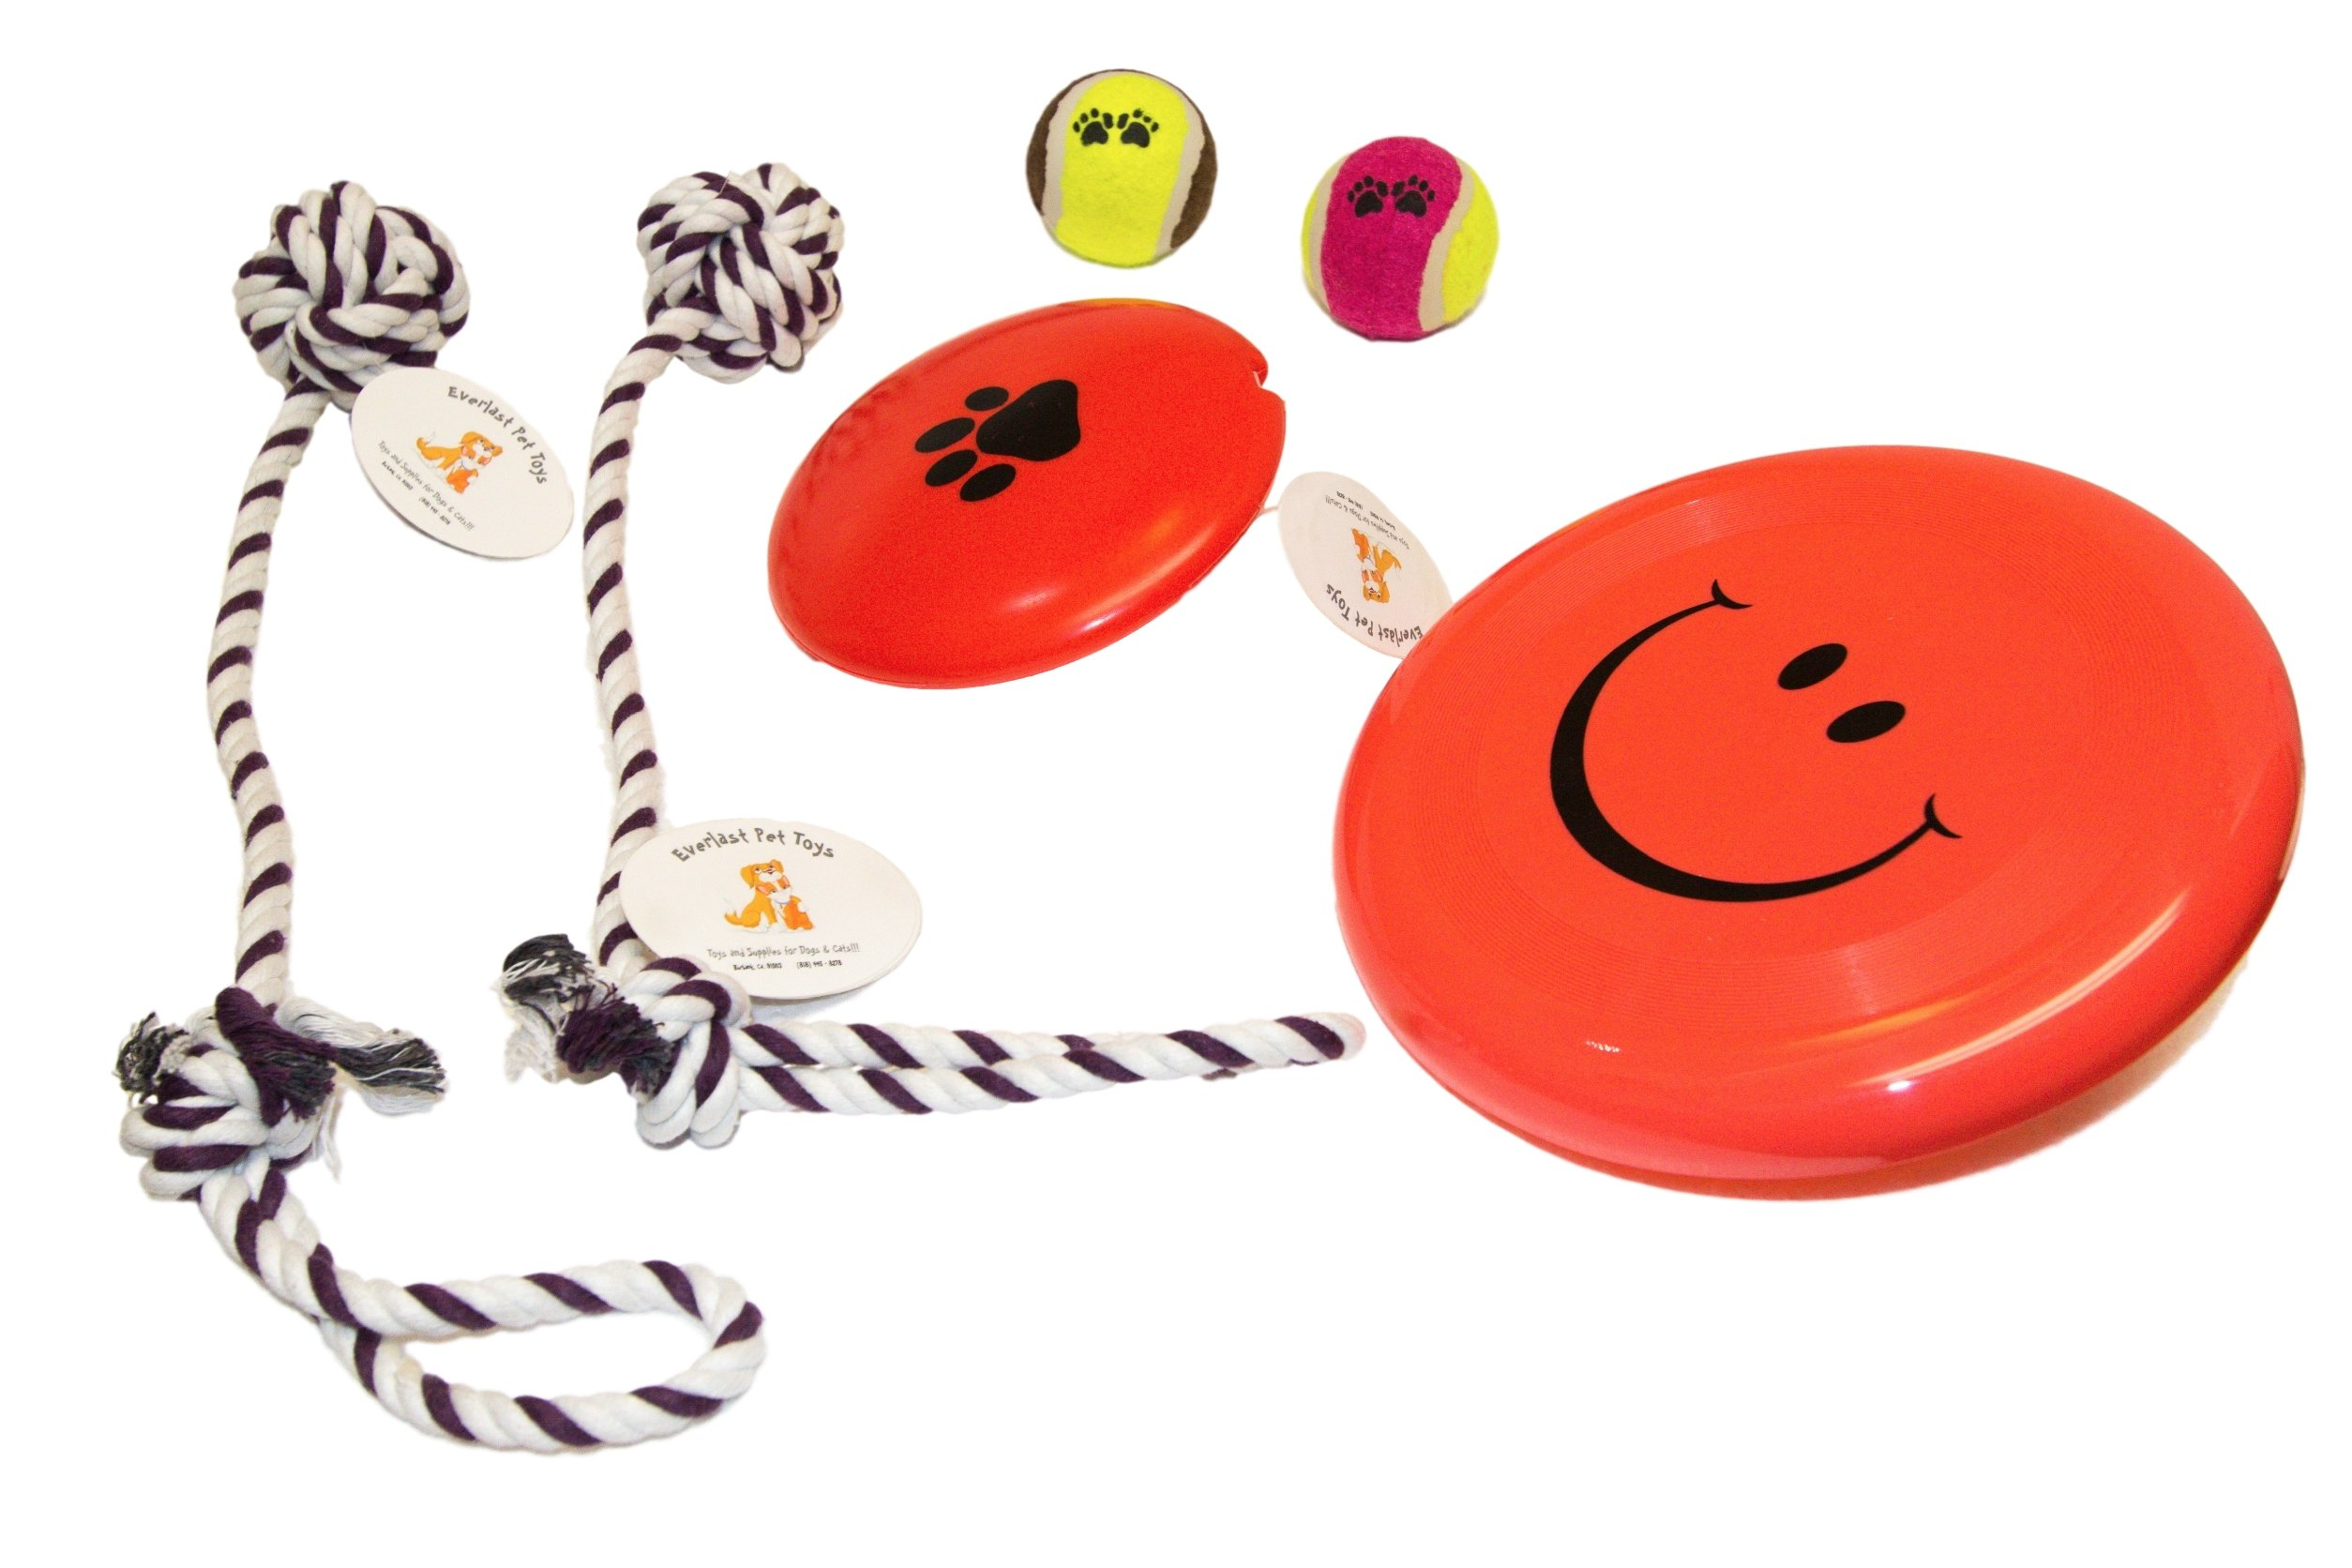 Everlast Pet Toys | Chew & Squeak Toy JUMBO Bundle Dogs | 2 - Knotted Pull Ropes | 'Paw' Squeaker | Guaranteed | 2 - 'Paw' Tennis Balls | 'Smiley Face' Flying Disc